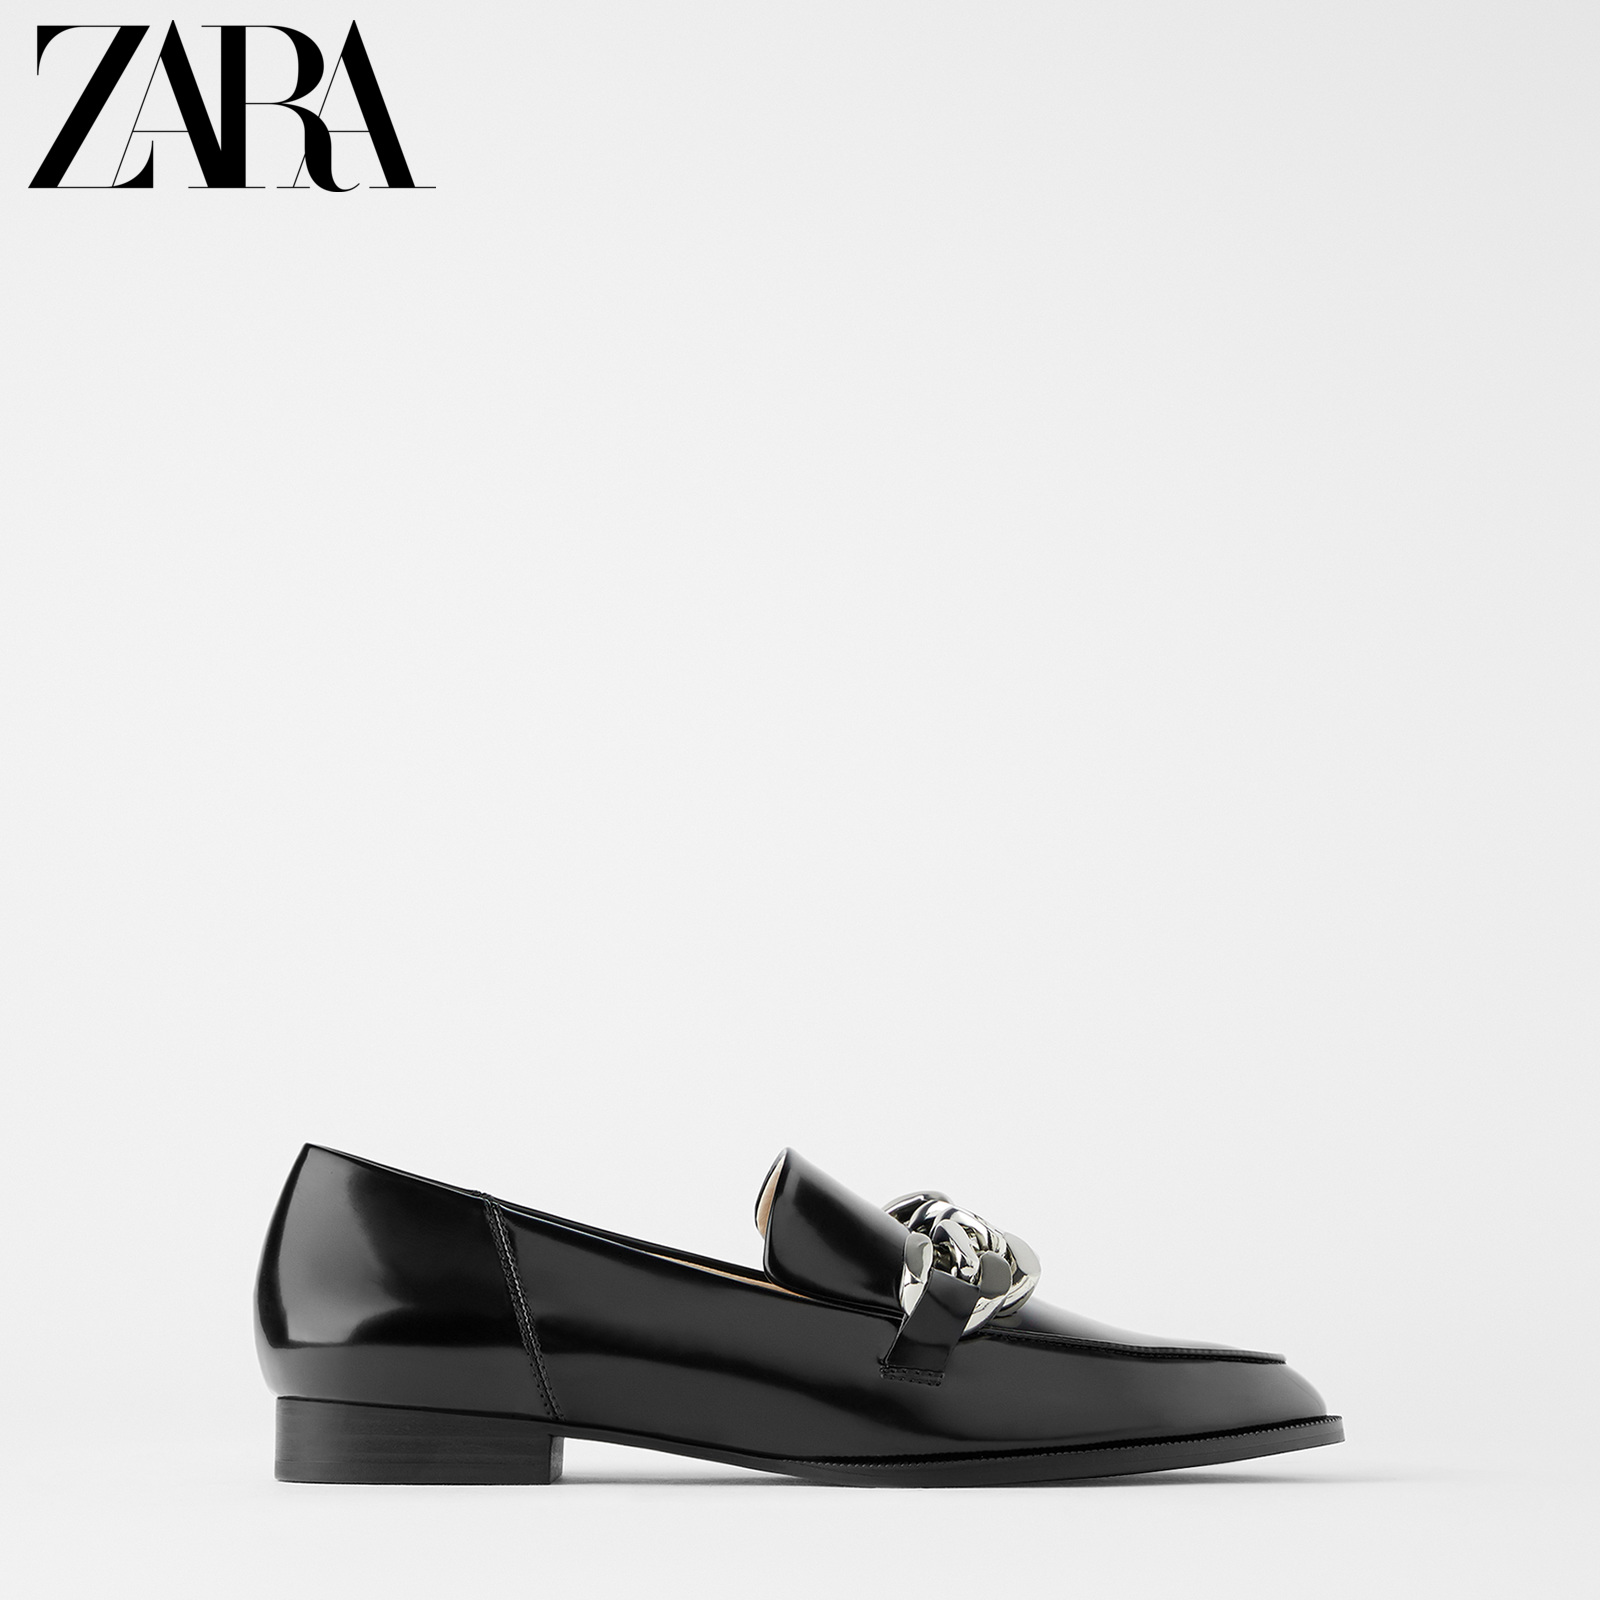 Zara new women's shoes black chain leather moccasin shoes 11503510040